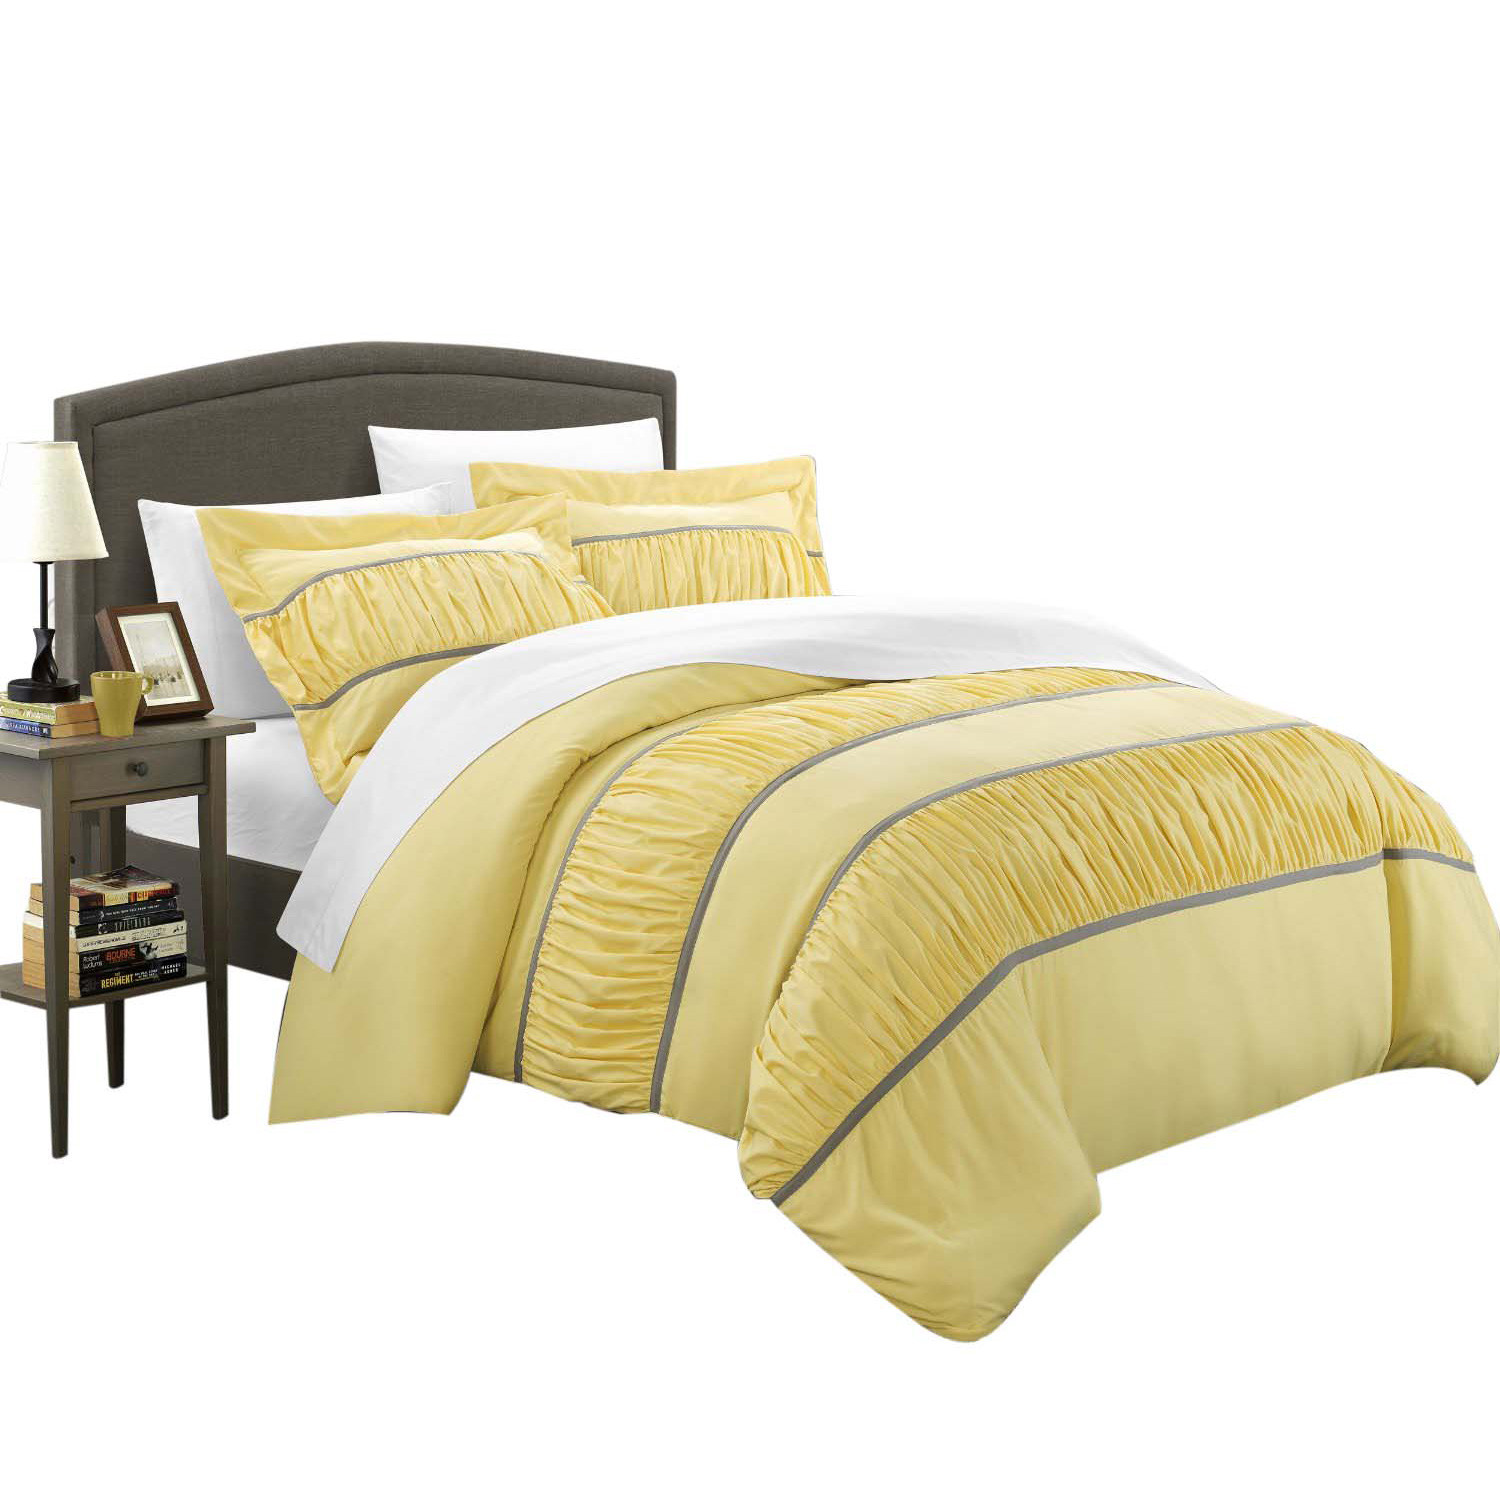 Besily Betsy 7 Piece Ruffled Duvet Cover with Sheet Set Yellow